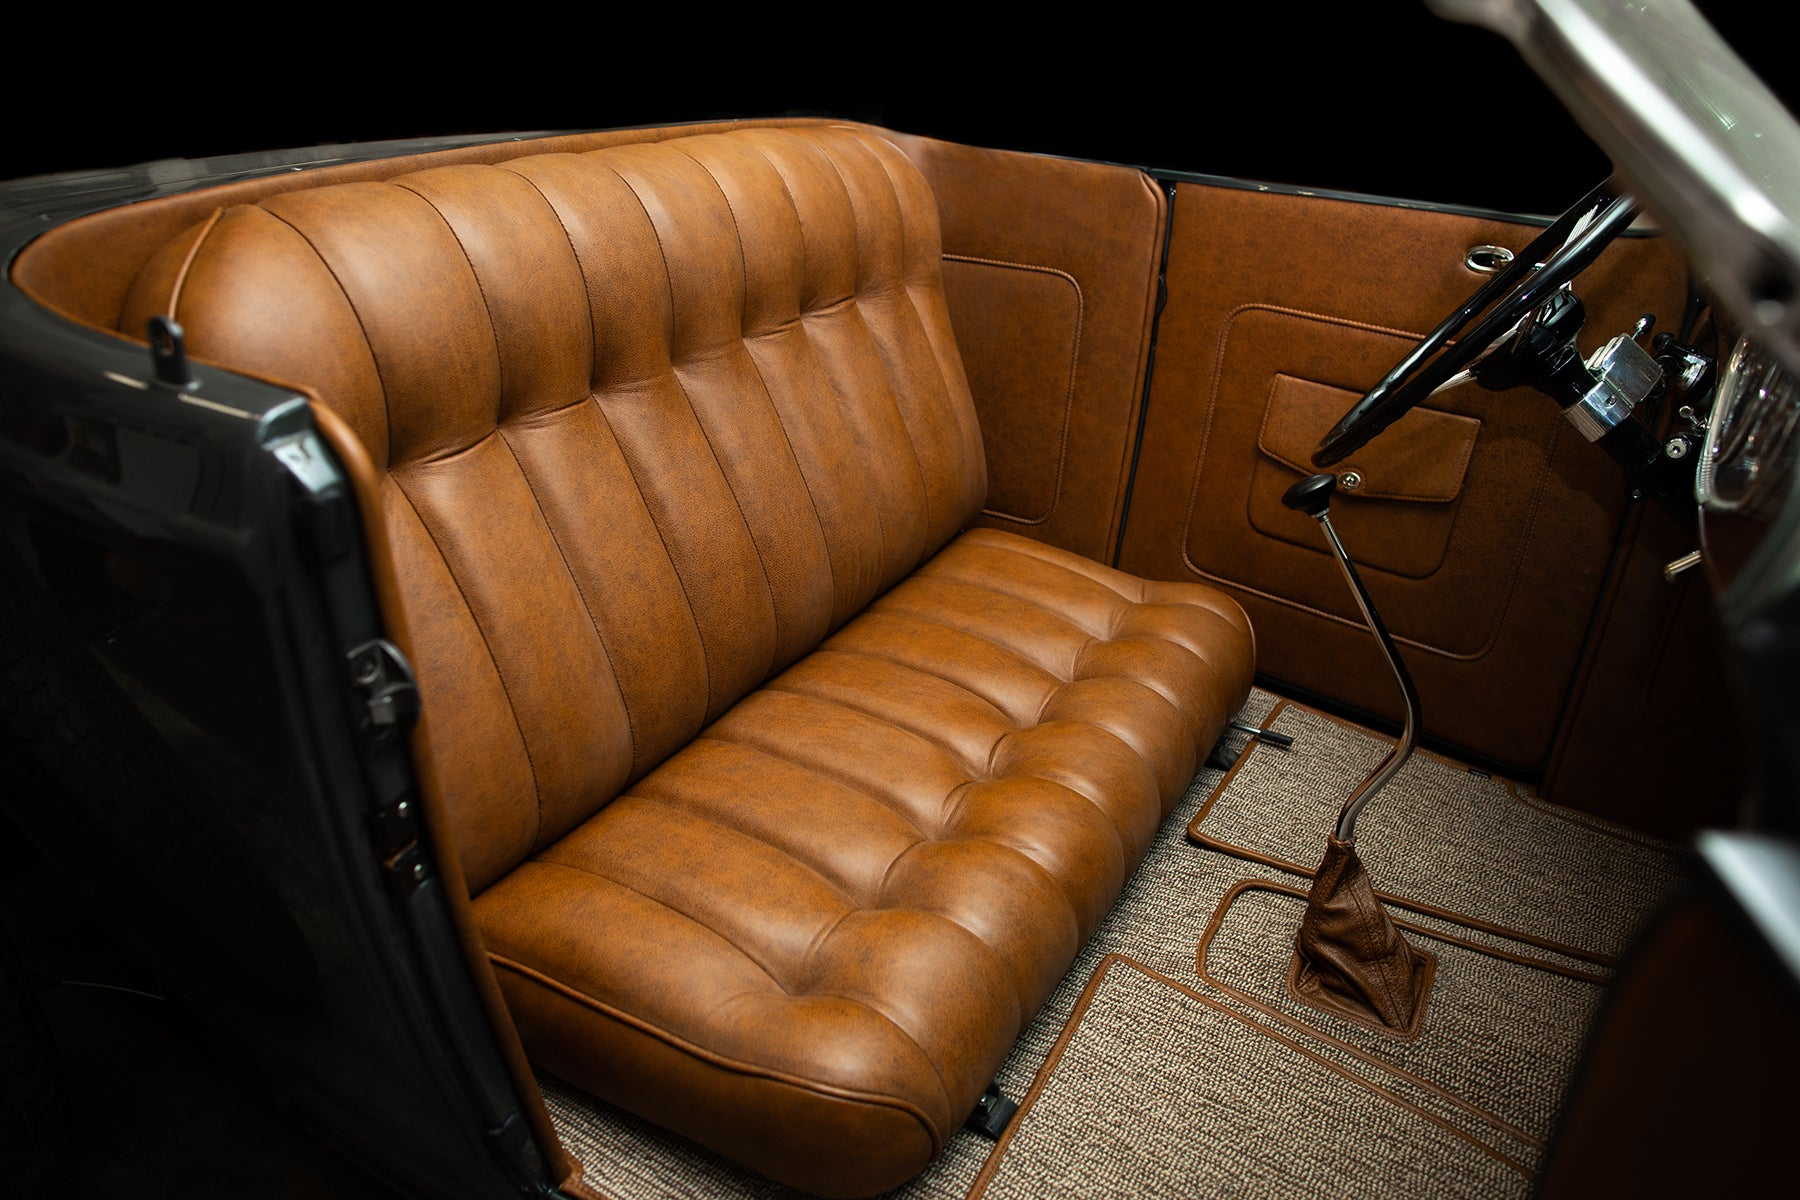 1932 Ford Roadster with Relicate Vintage Saddle Distressed Leather